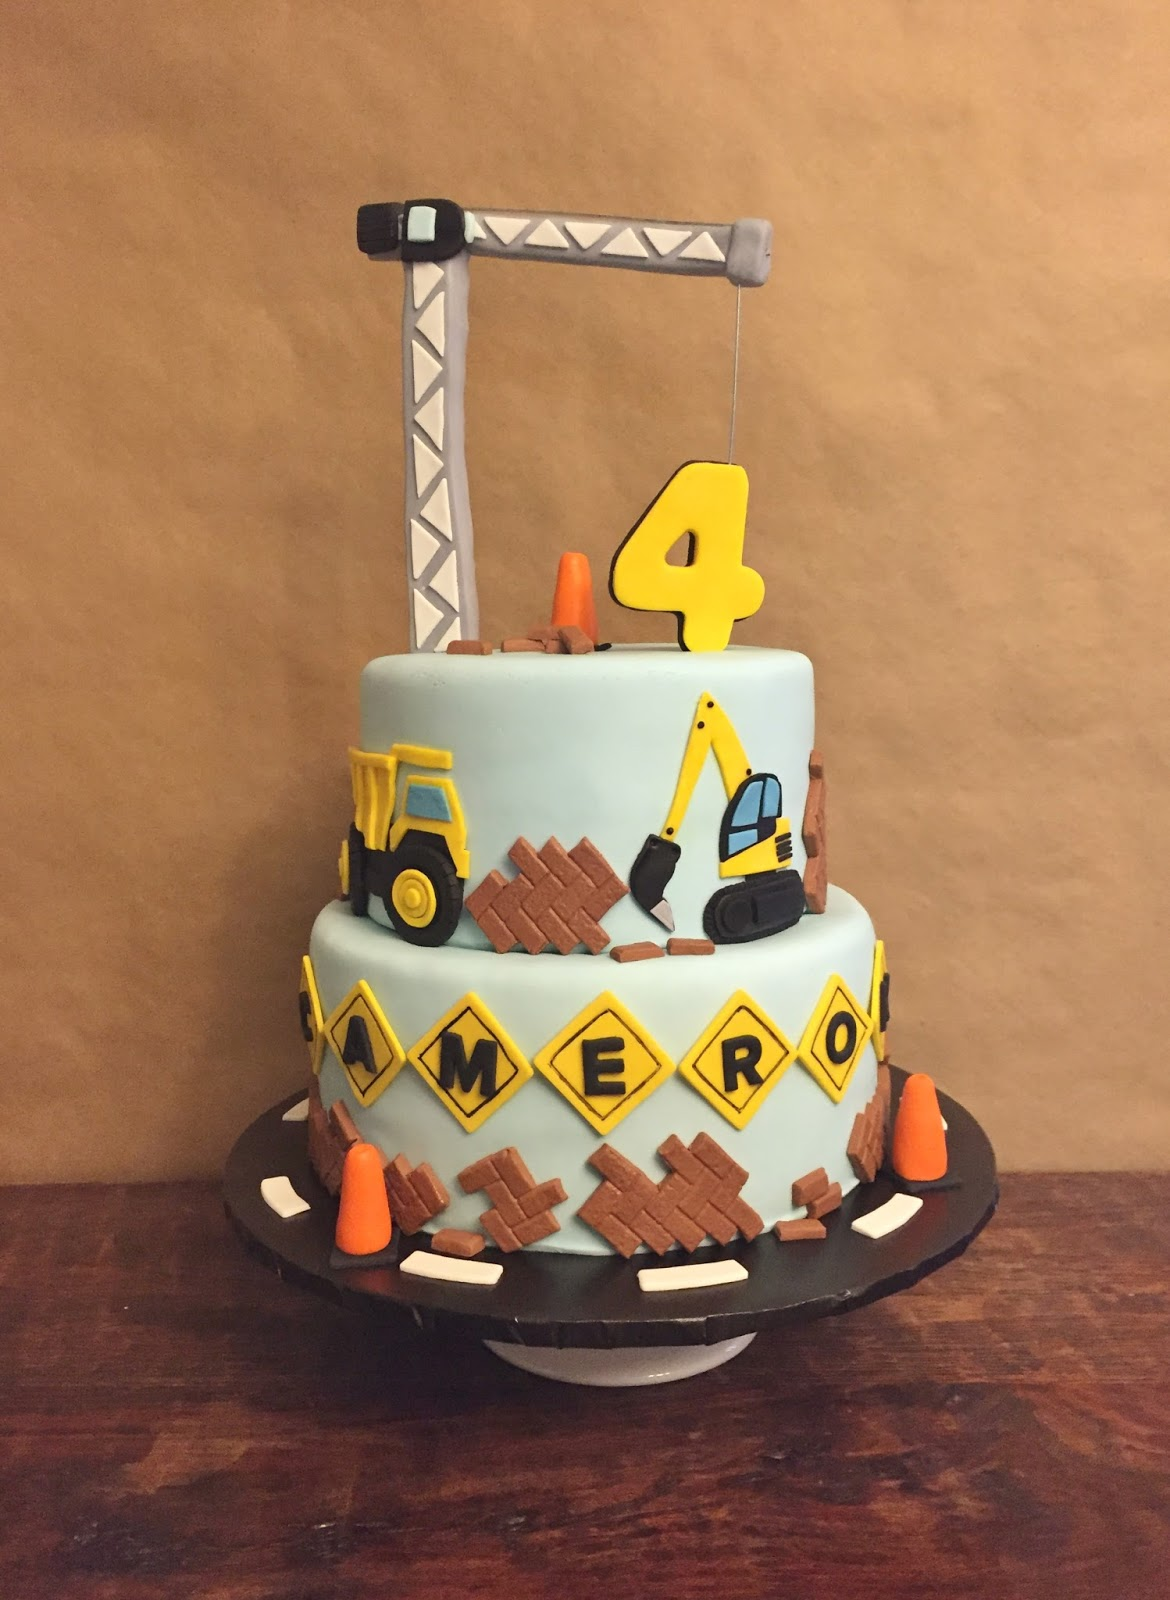 Construction Birthday Cake 8 10